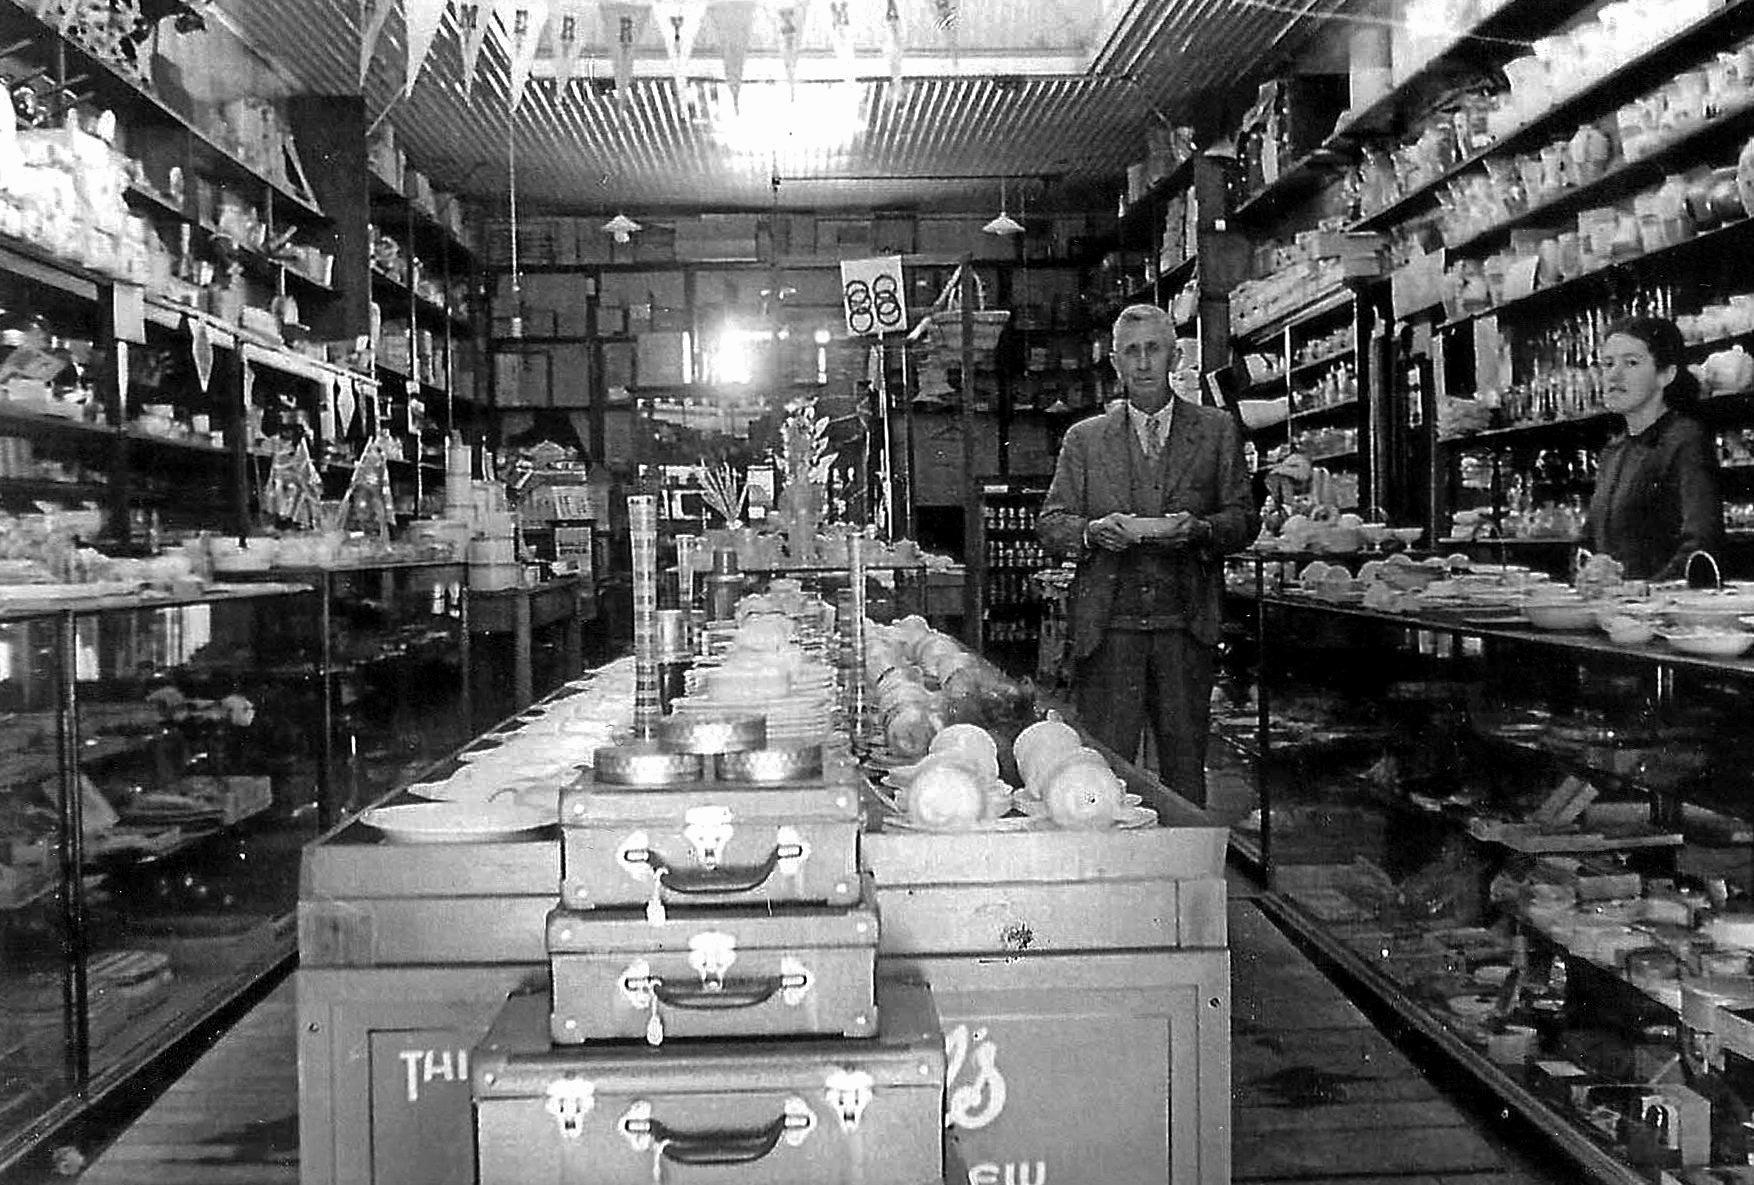 Frederick Avenell in his Avenell Bros shop, with Betty McWatters behind the counter.